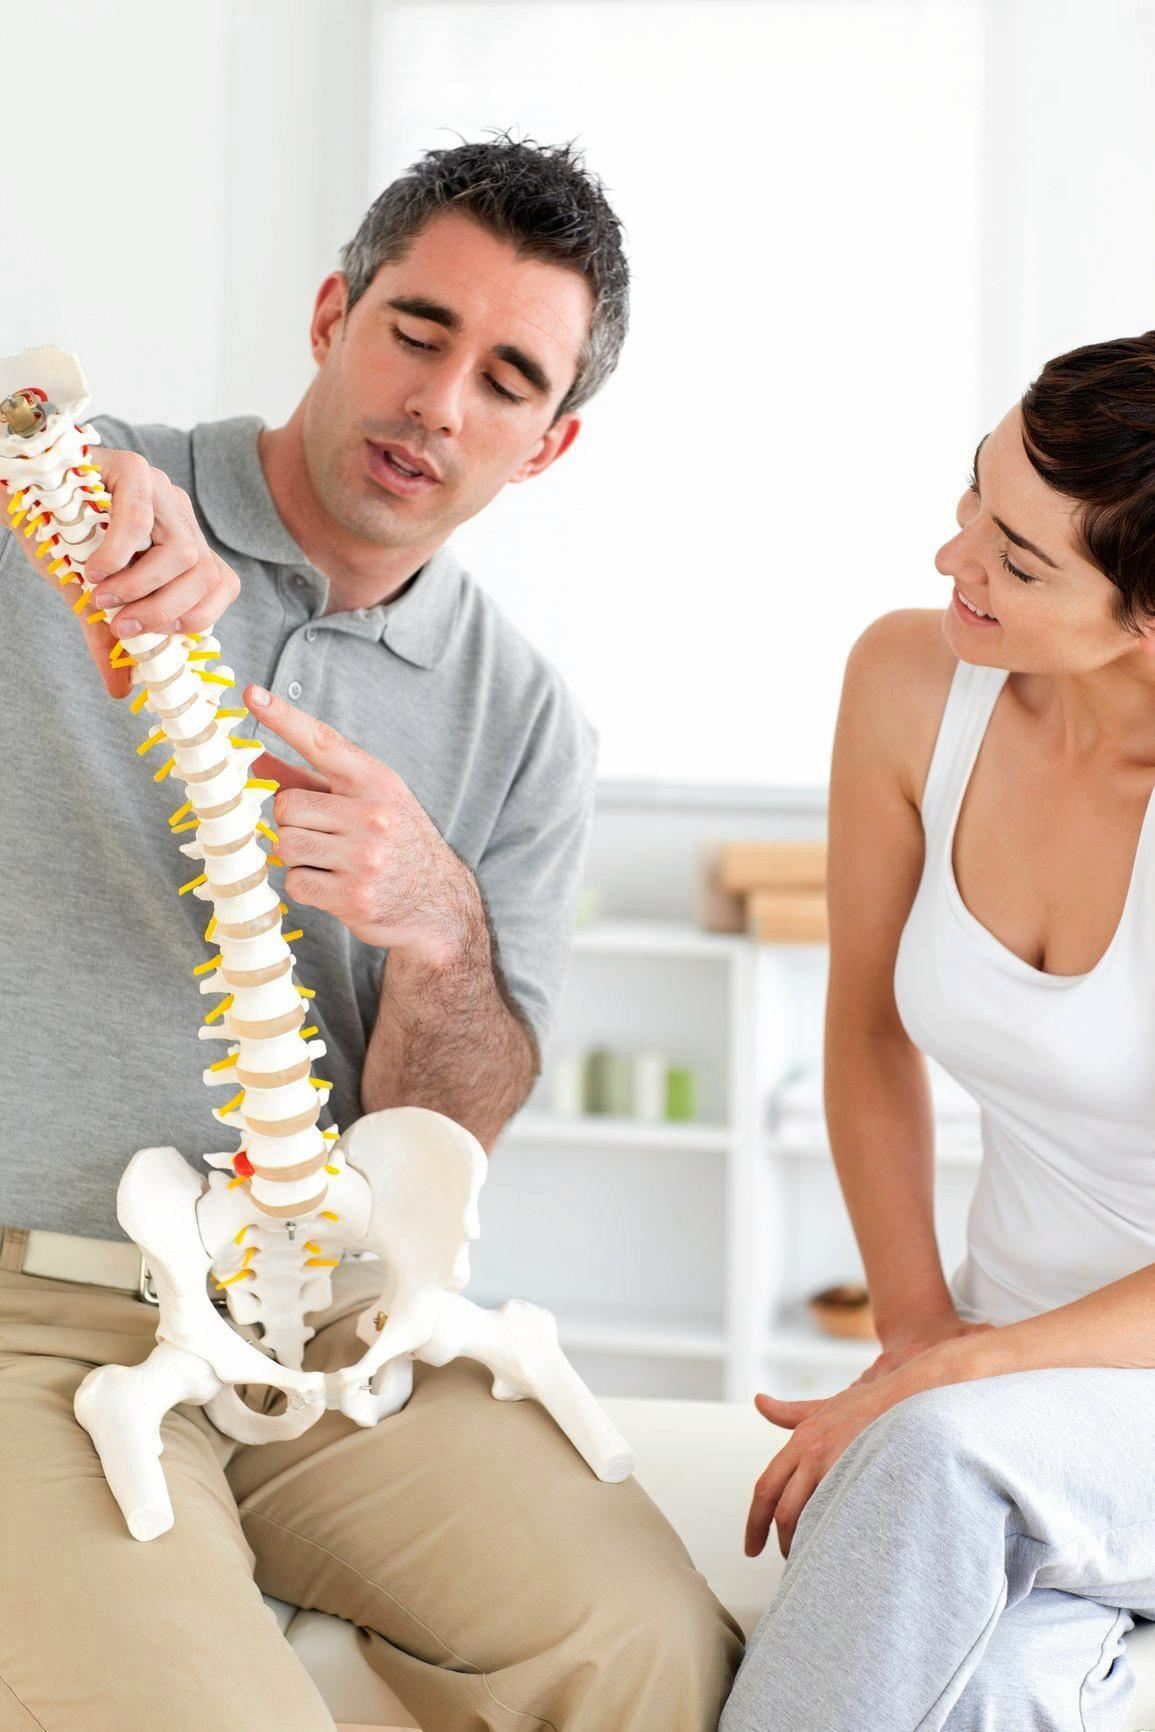 Chiropractor explaining the spine to a woman in a room